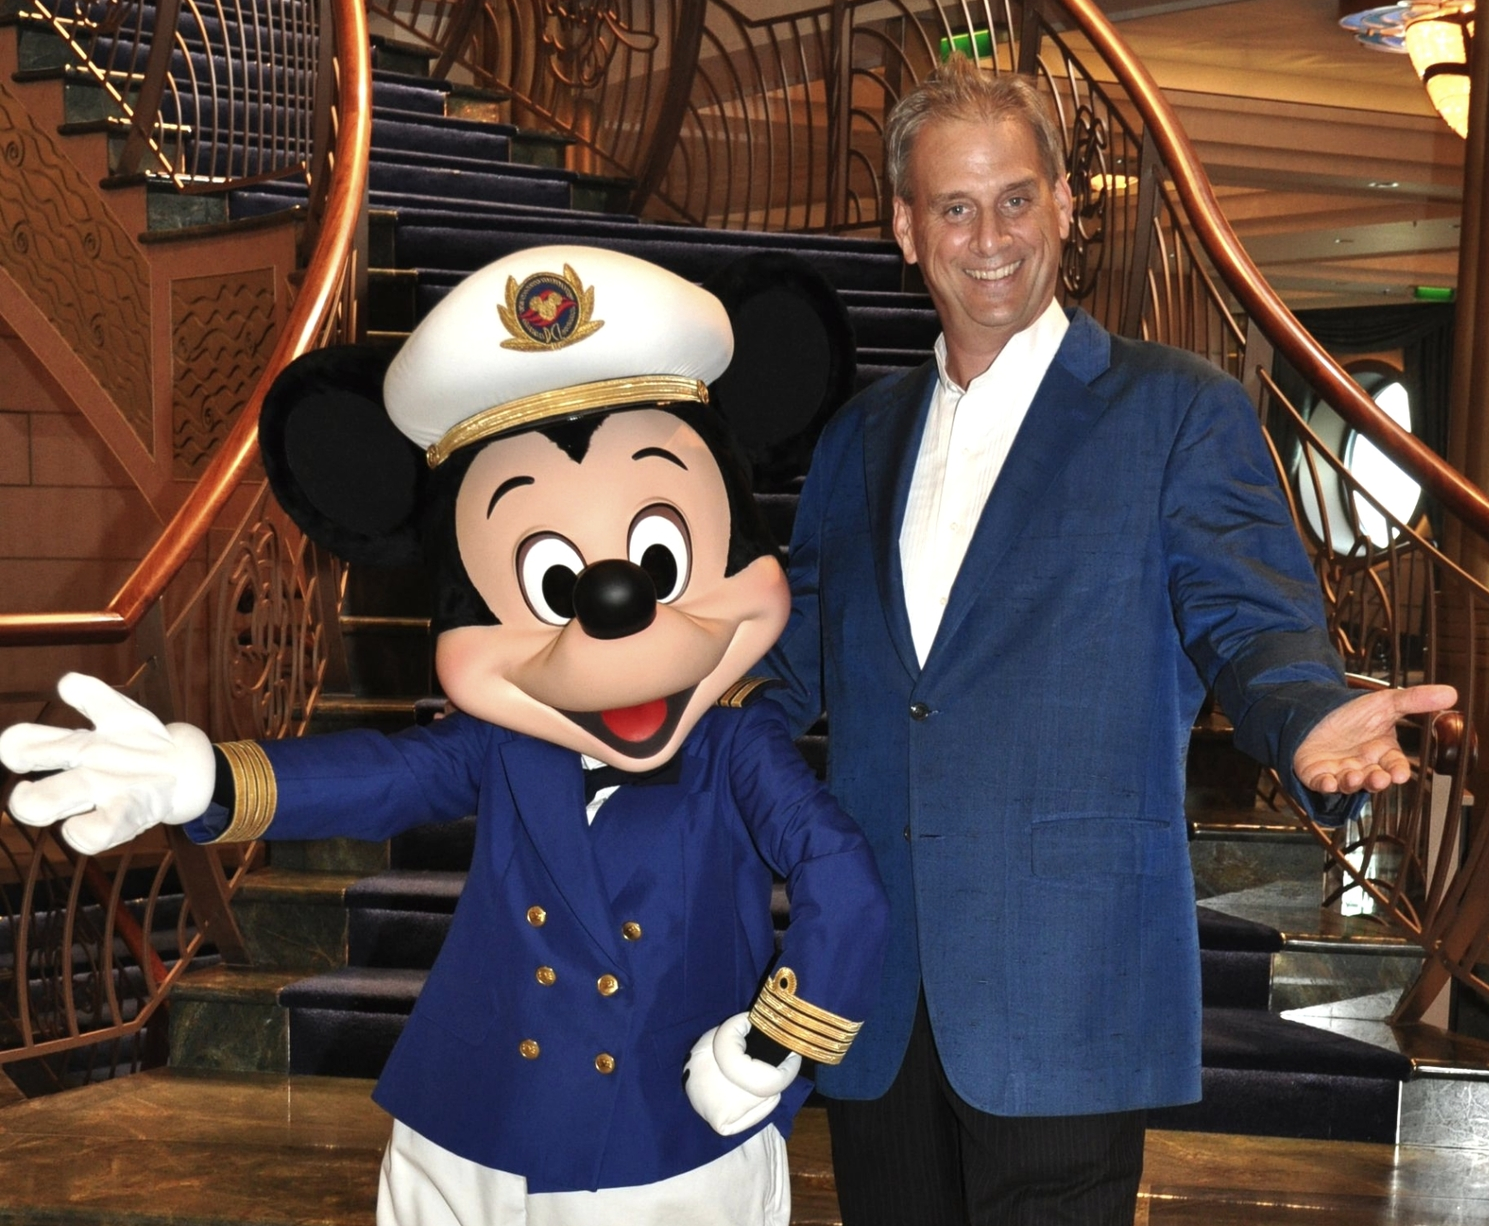 Magic Dave will be performing exclusively on Disney Cruise Line this season!